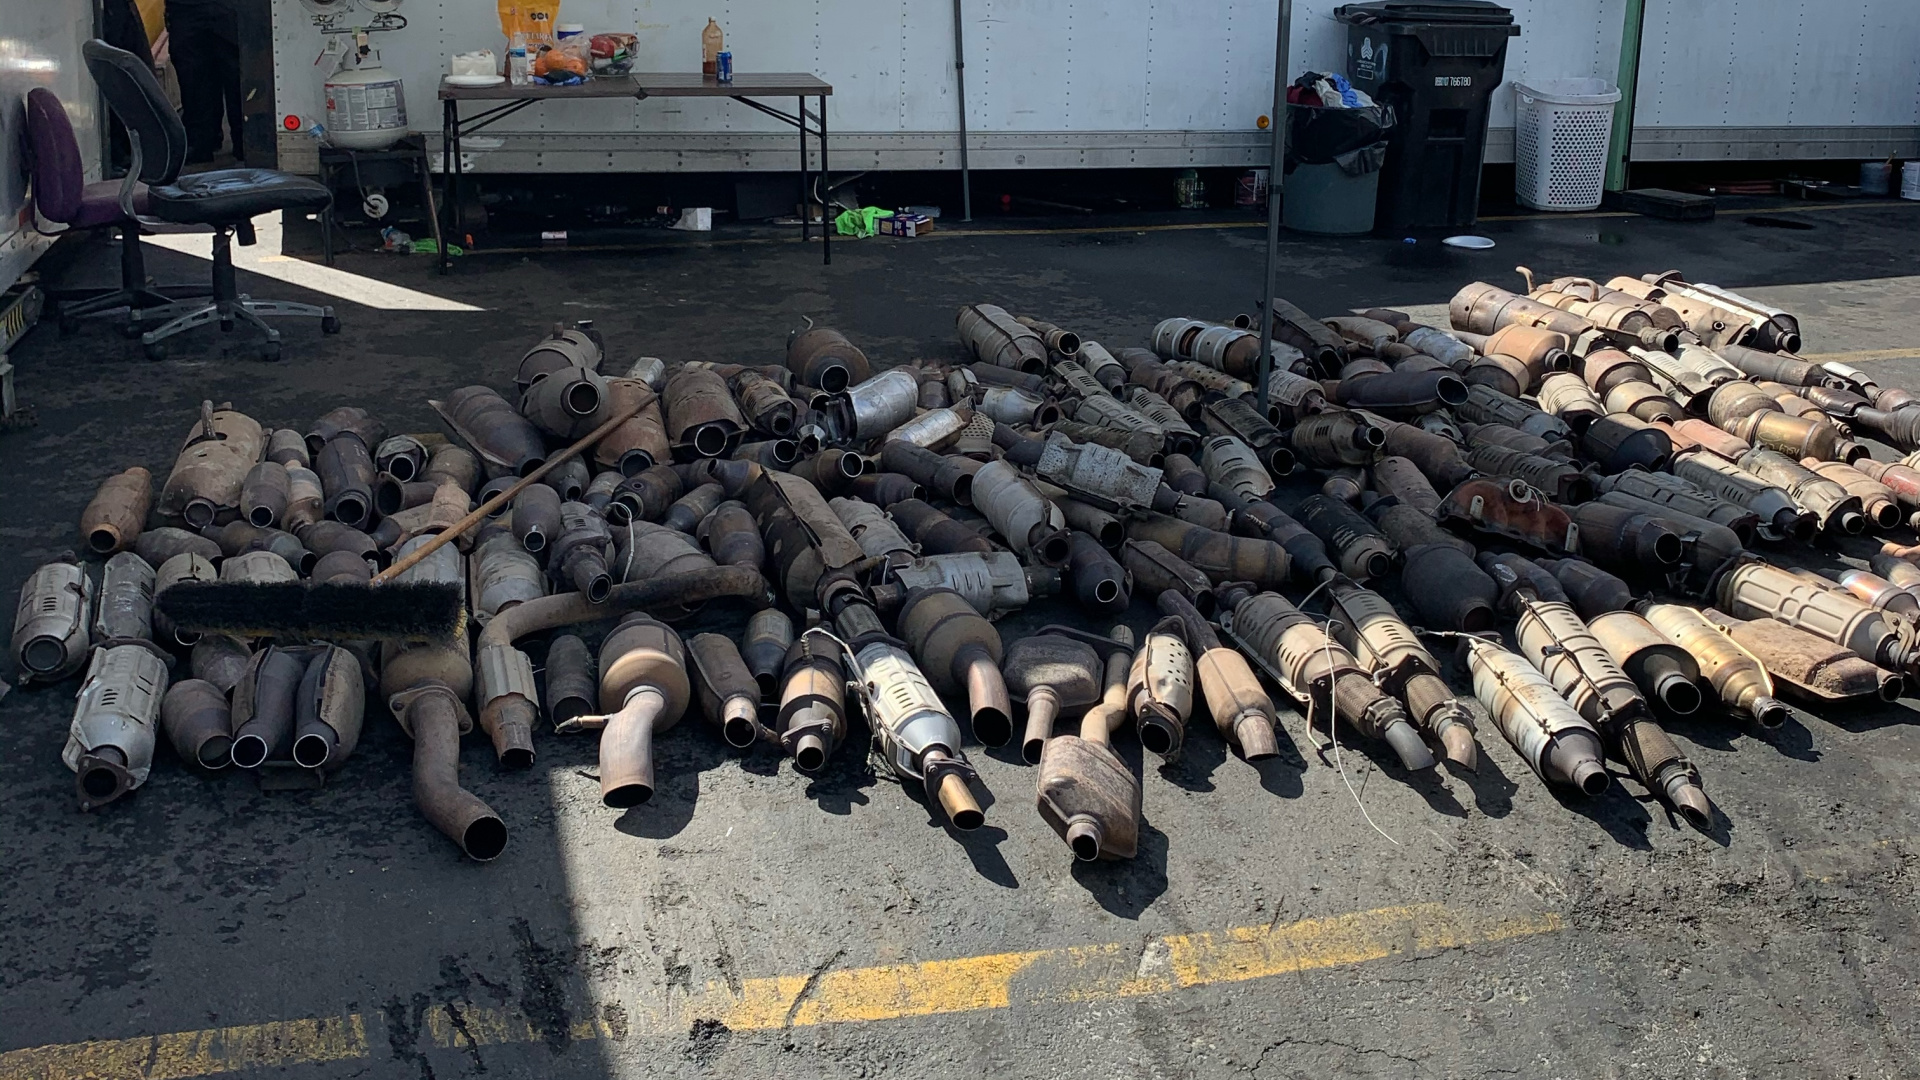 Catalytic converters recovered by the Santa Clarita Valley Sheriff's Station Crime Impact team of the Los Angeles County Sheriff's Department on March 10, 2021. (LASD)